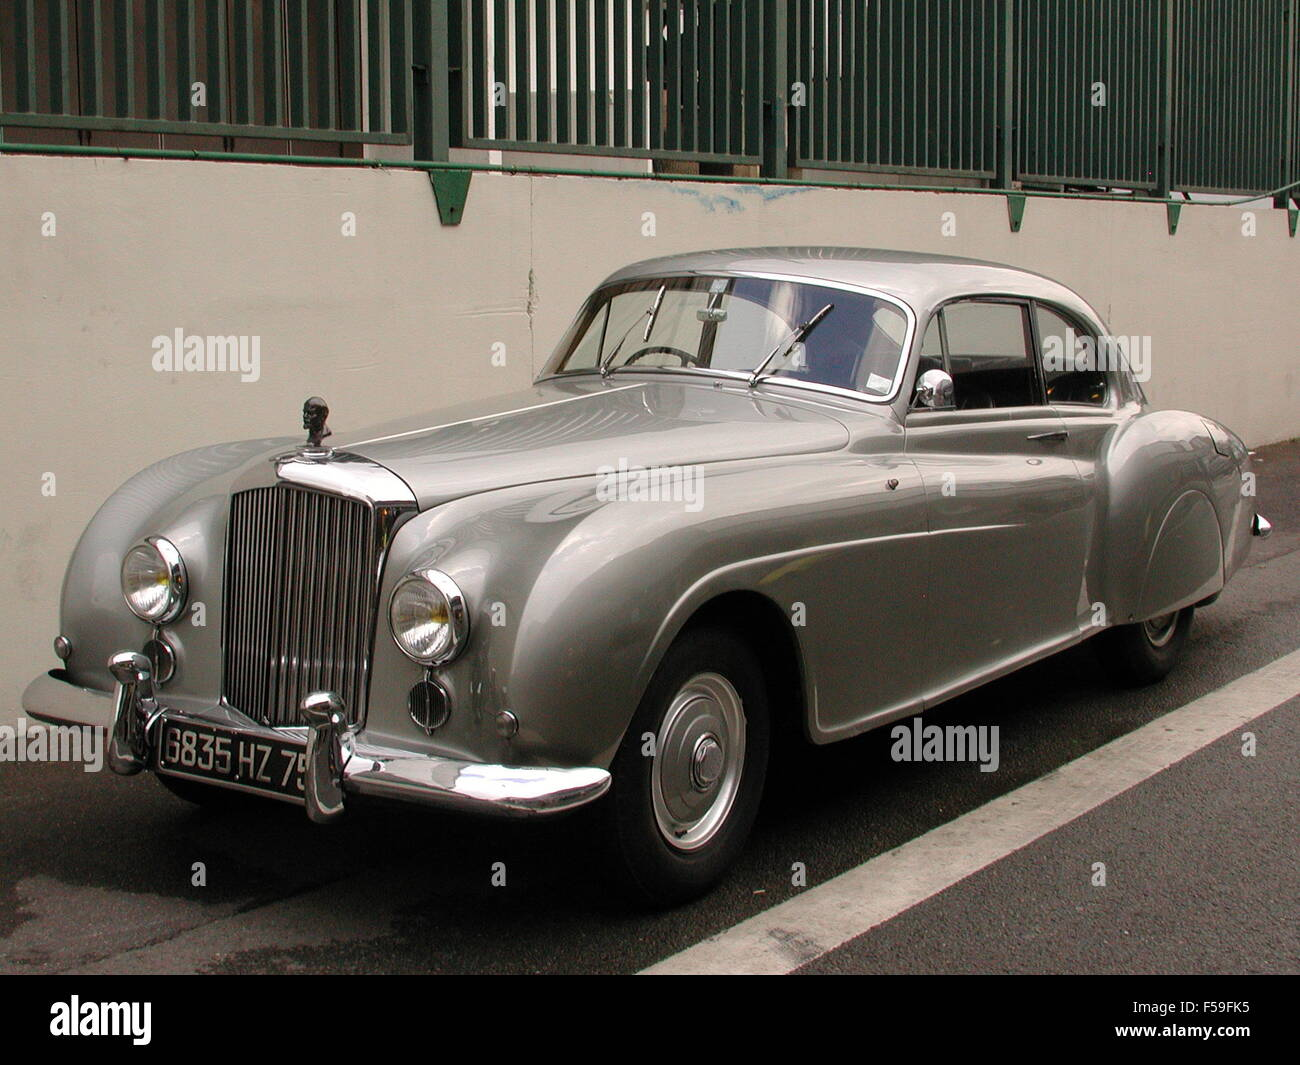 Bentley 1950s R type Continental Coupe with customised radiator grille ornament - Stock Image